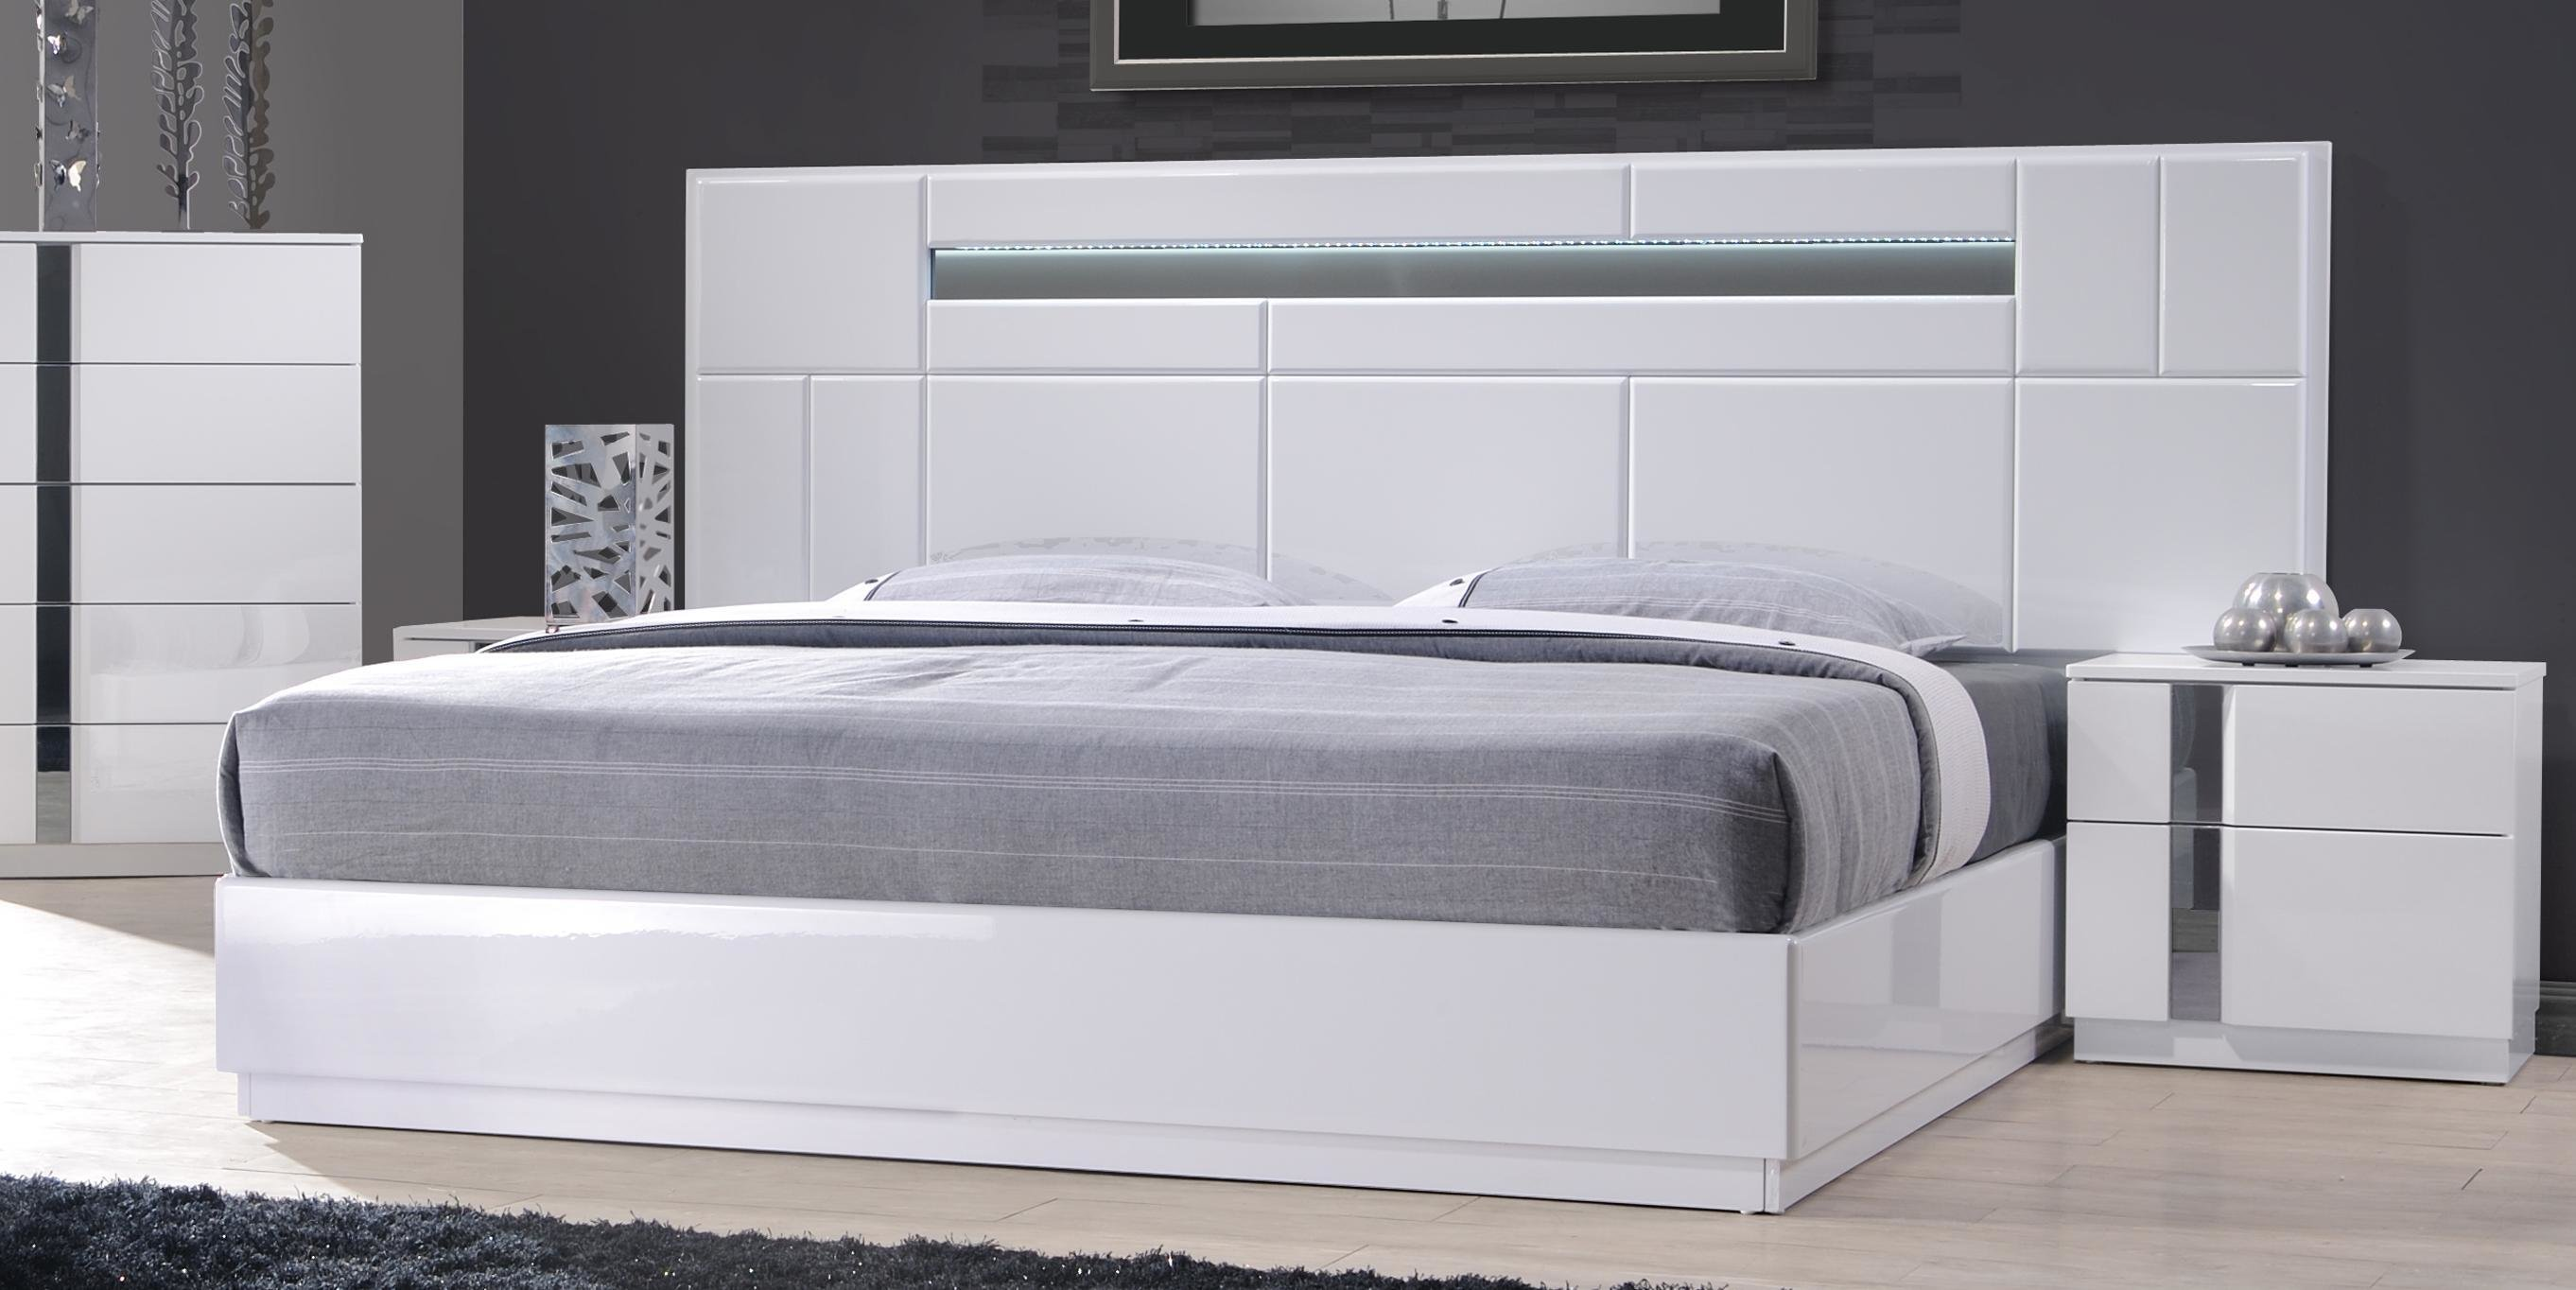 Best Monte Carlo King Size White Lacquer Chrome 5Pc Bedroom Set W Light Ebay With Pictures